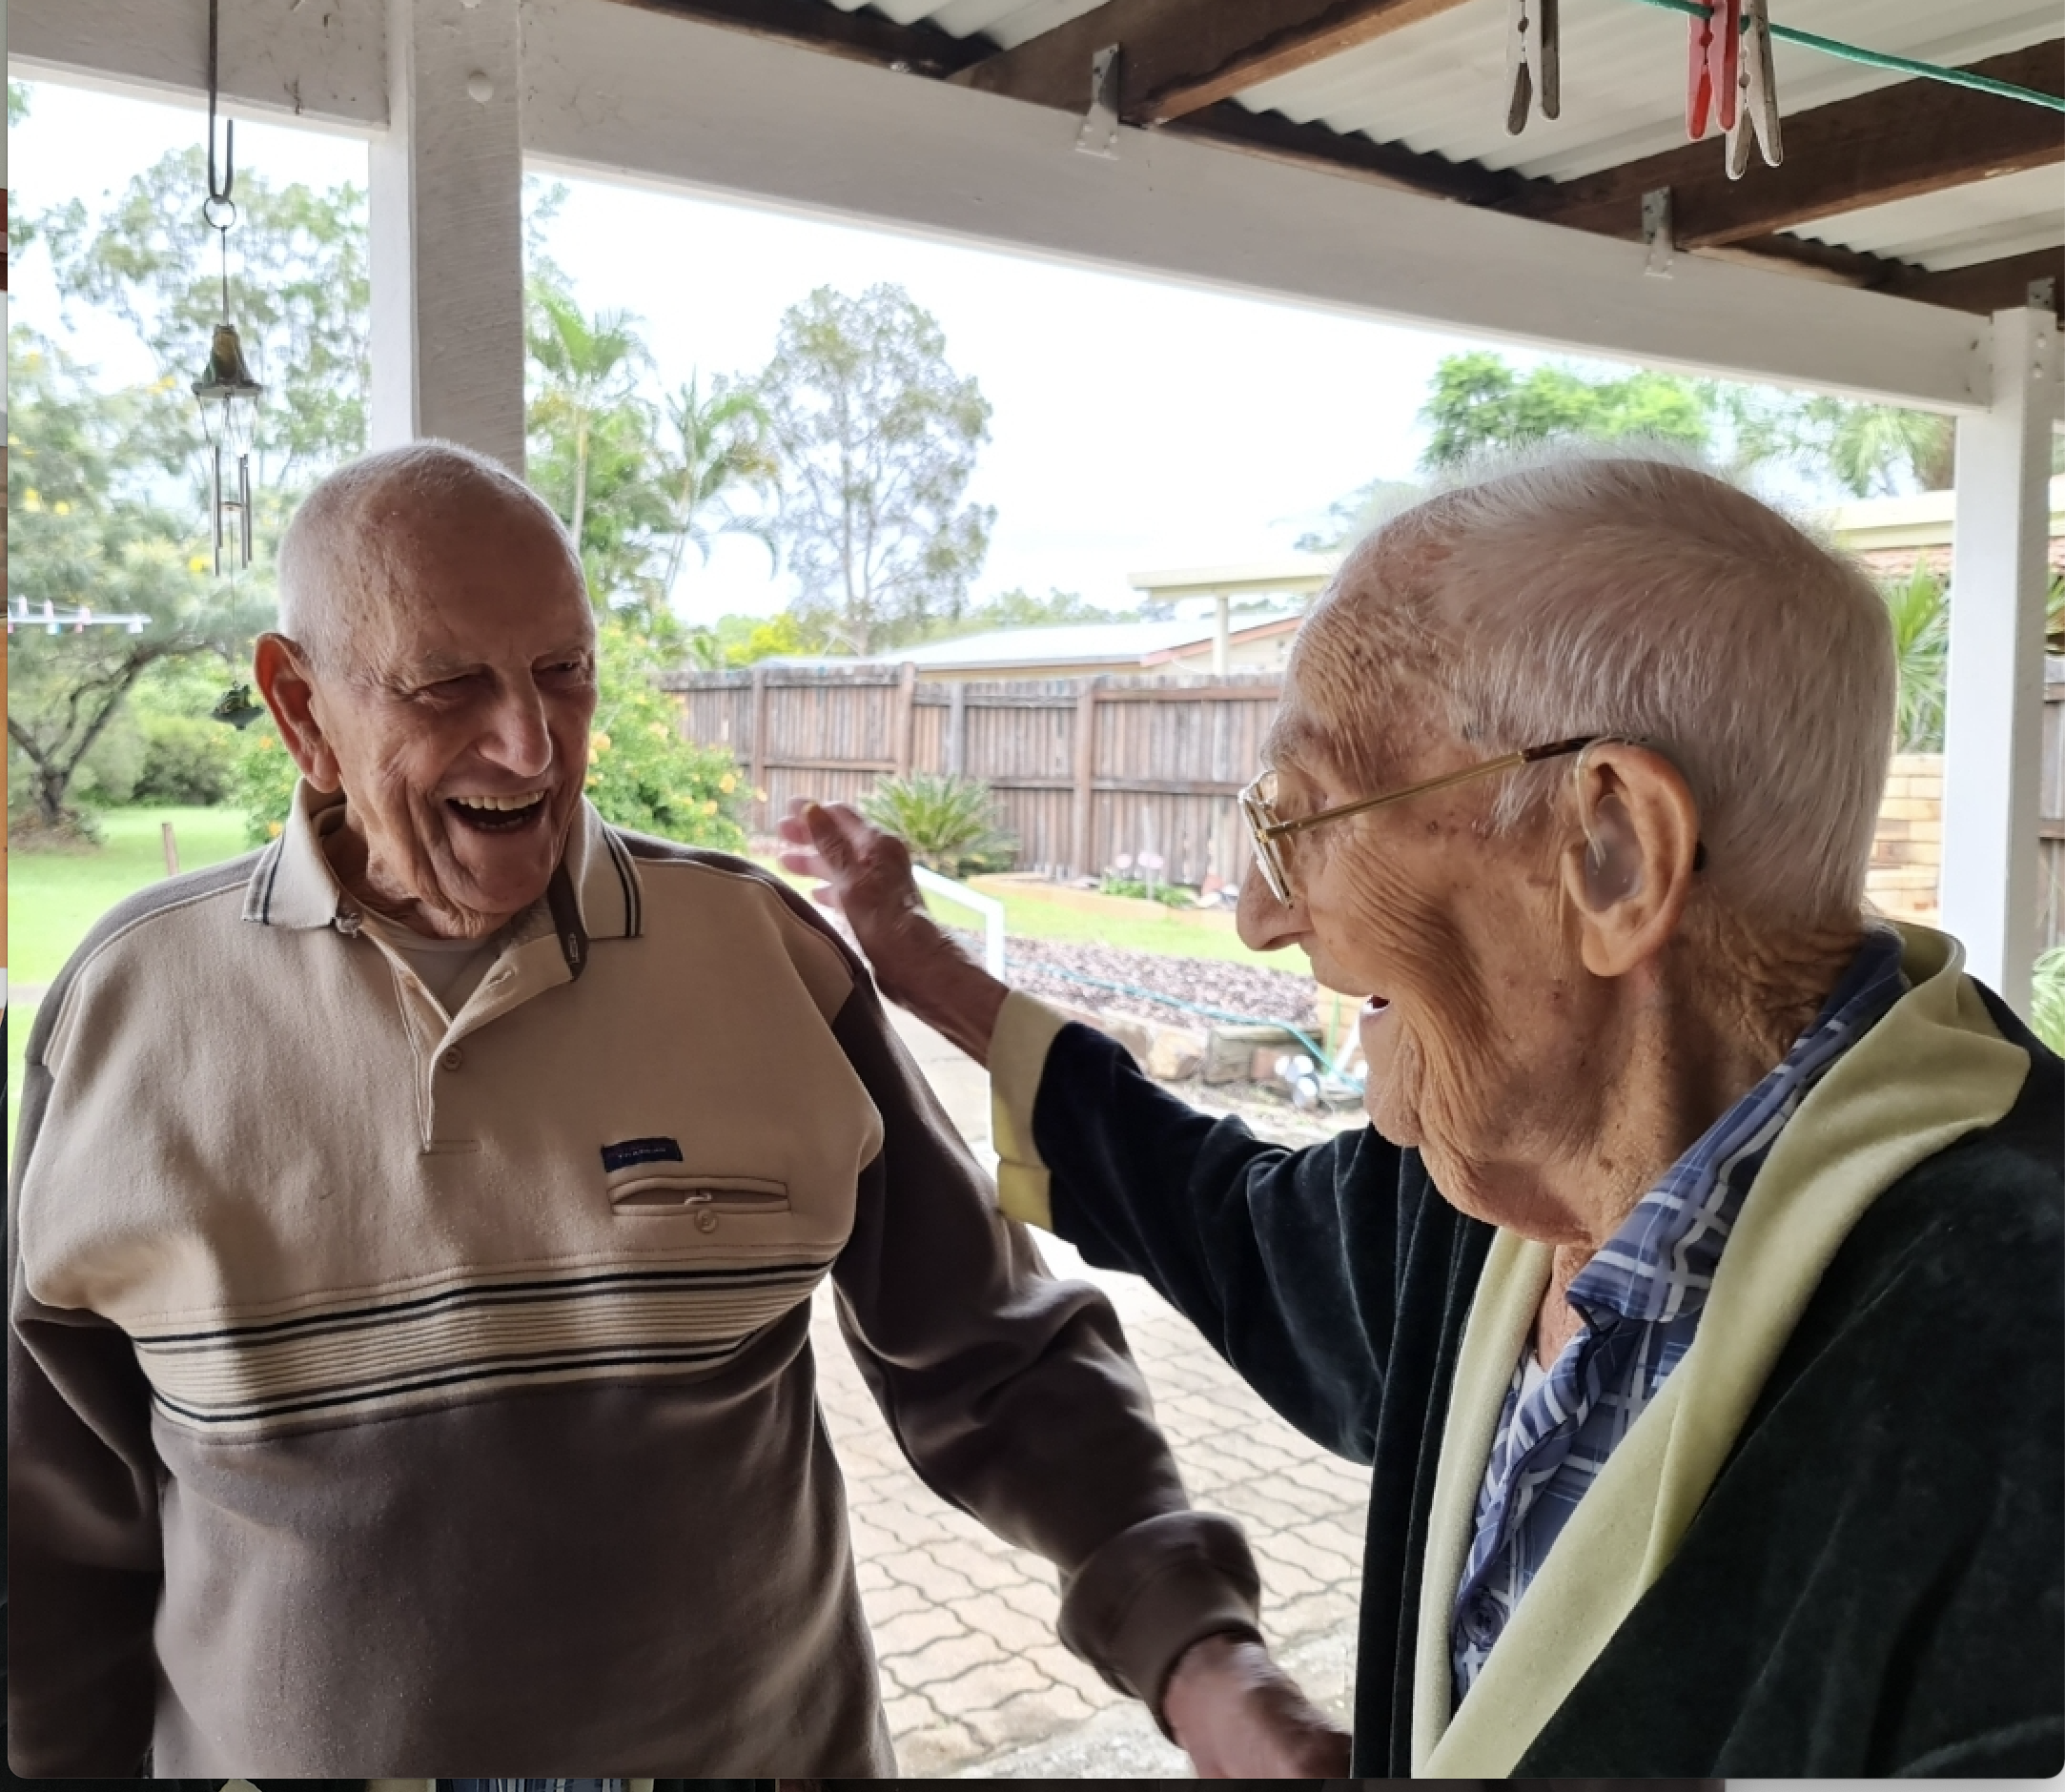 Ossie & Norm's story